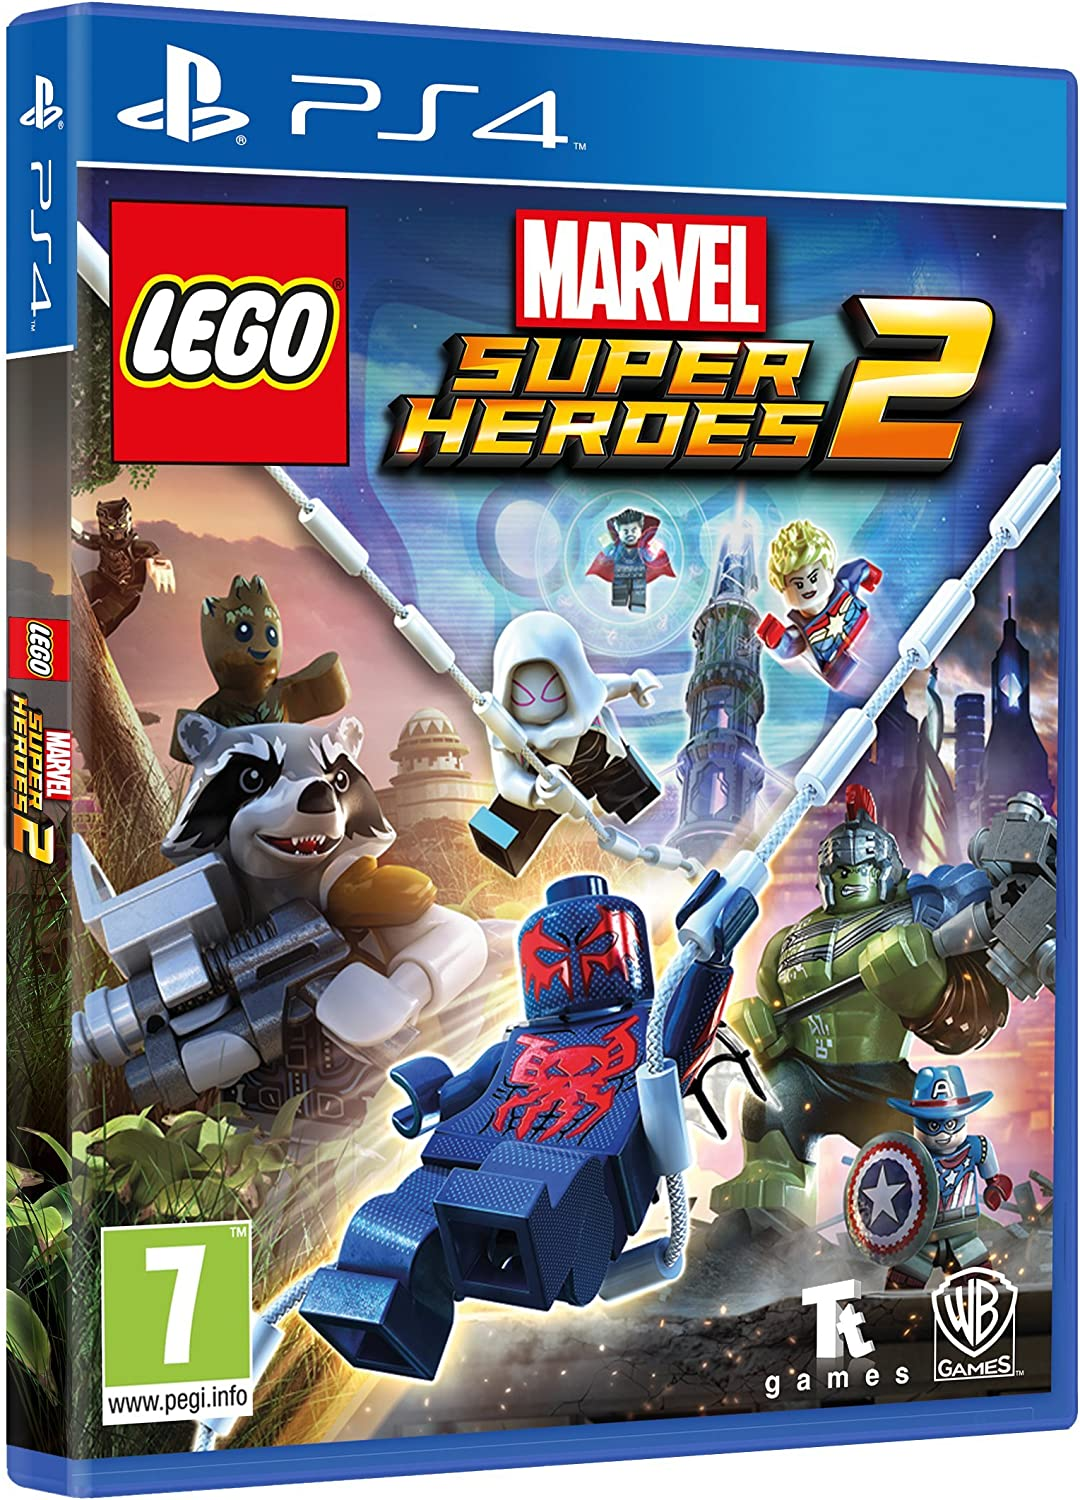 Lego Marvel Super Heroes 2 - Edición Exclusiva Amazon - PlayStation 4